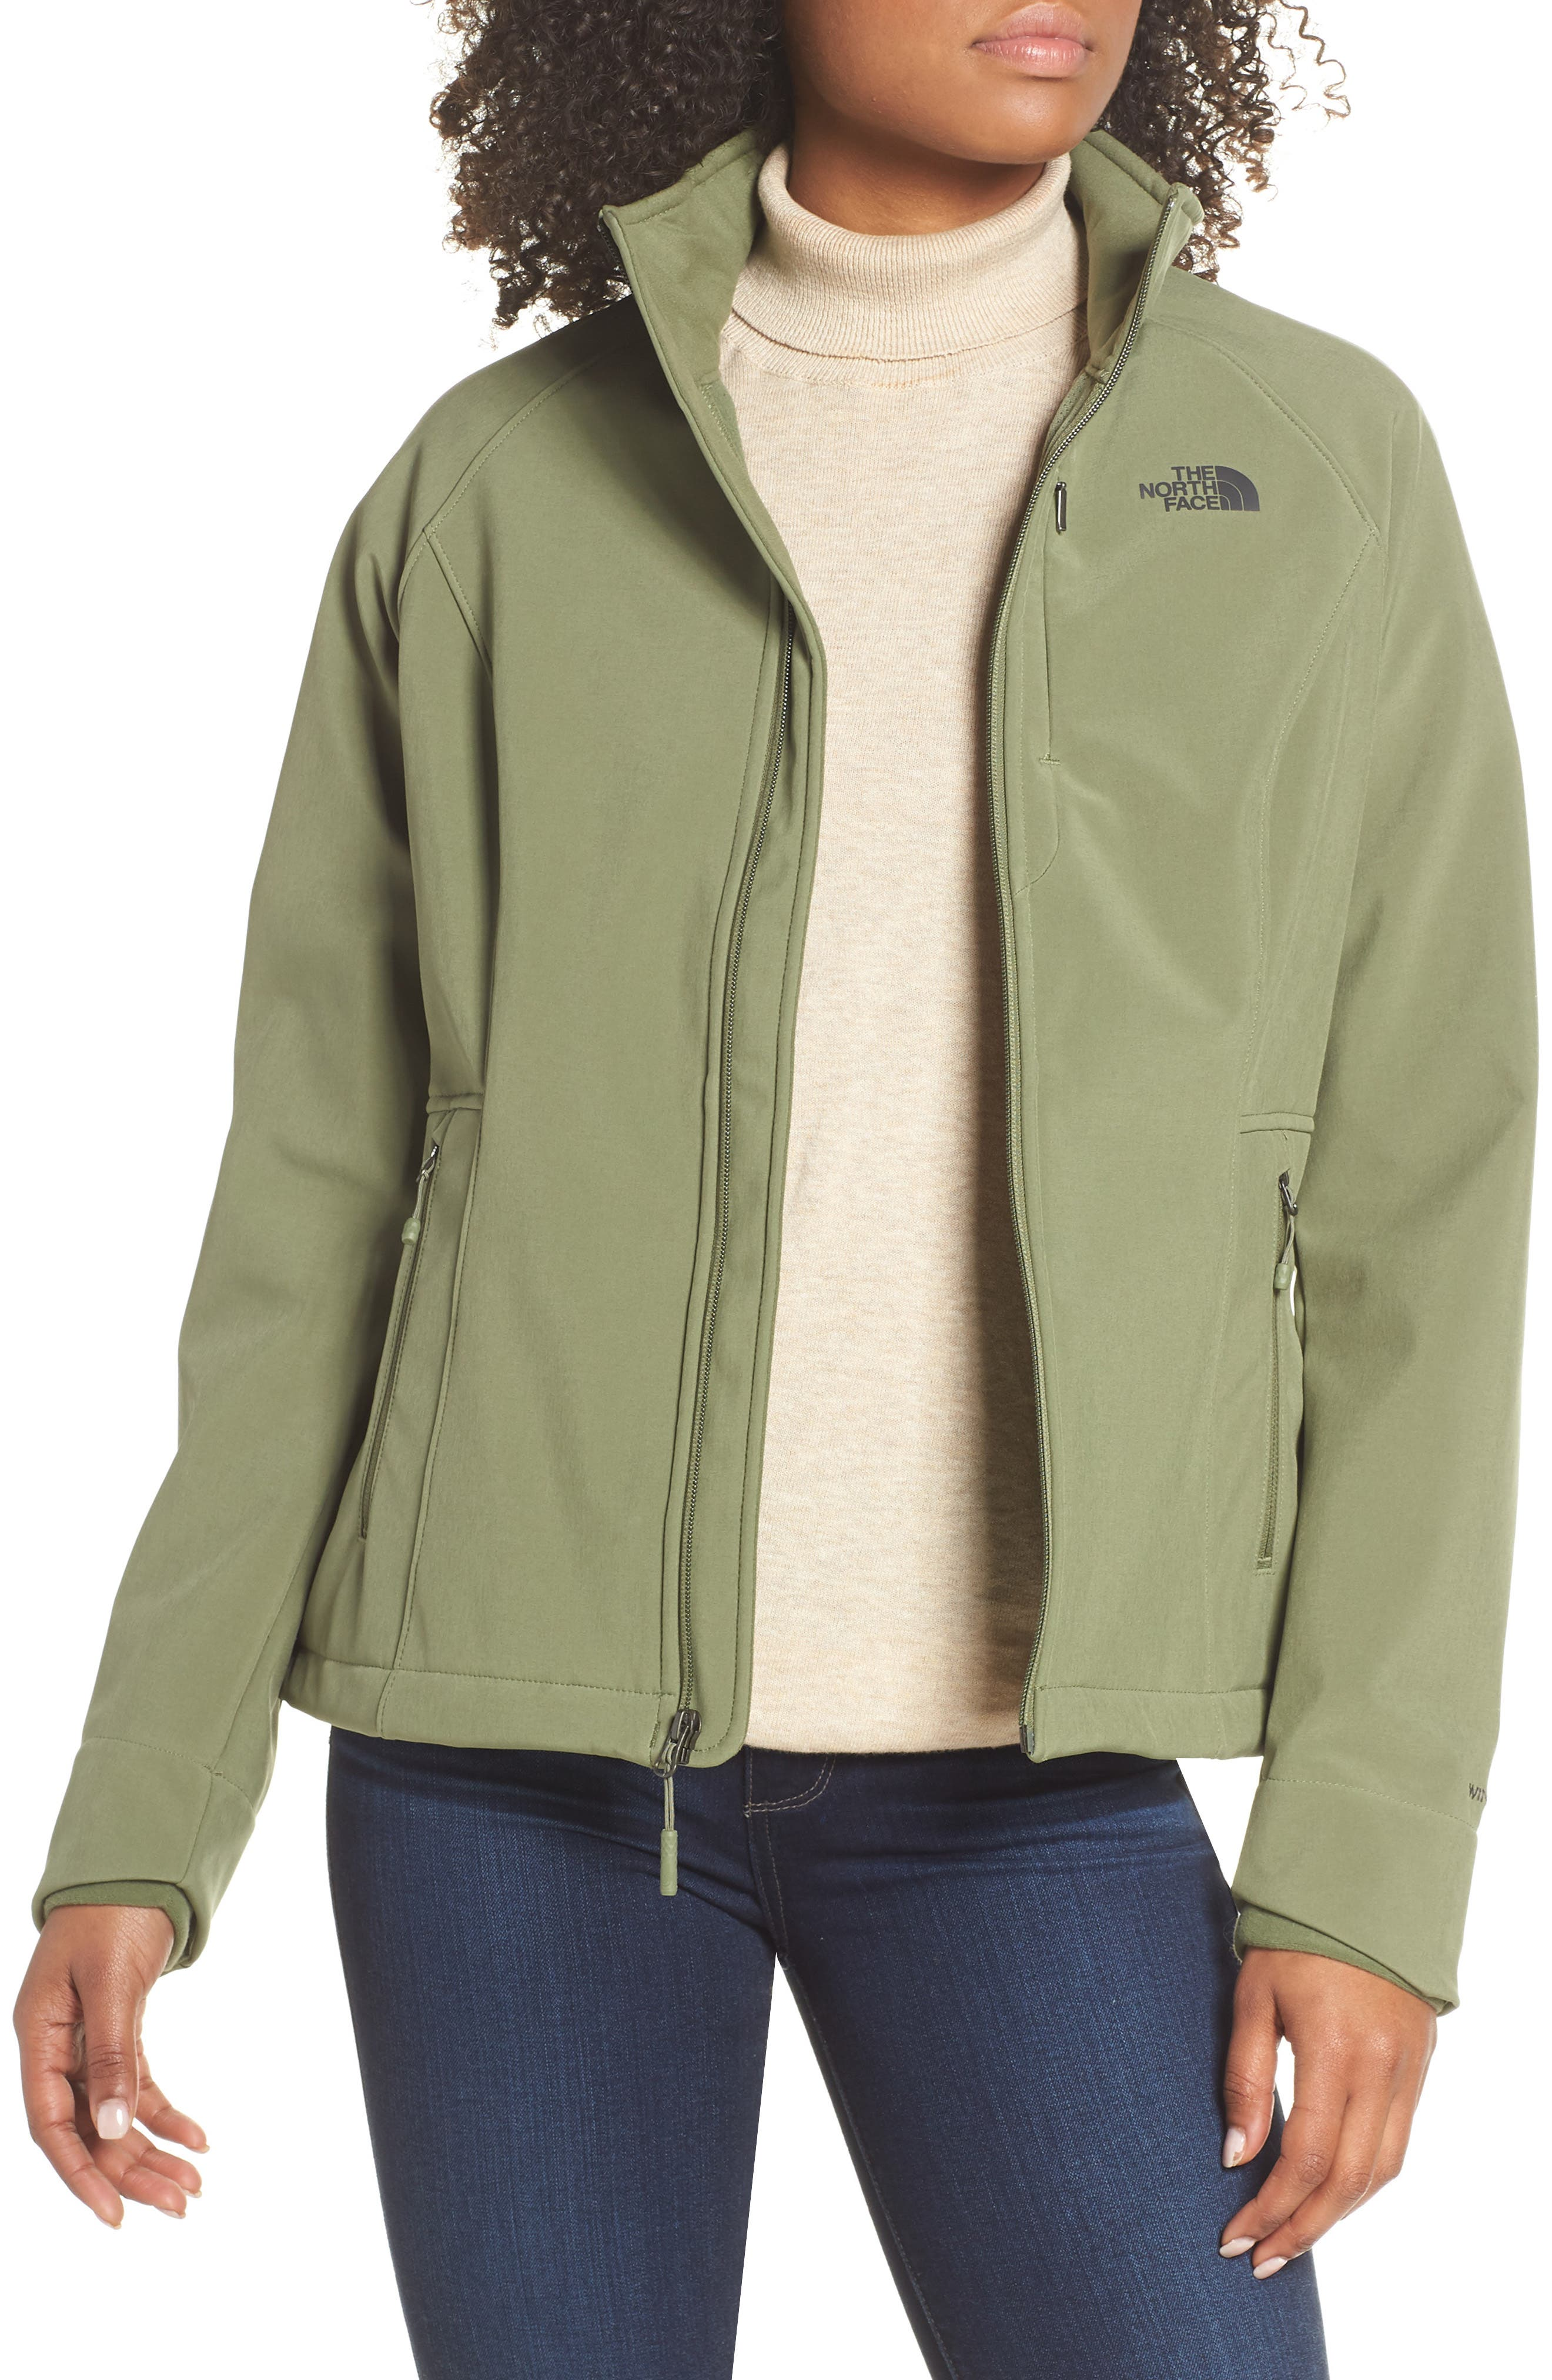 THE NORTH FACE, 'Apex Bionic 2' Jacket, Main thumbnail 1, color, 301